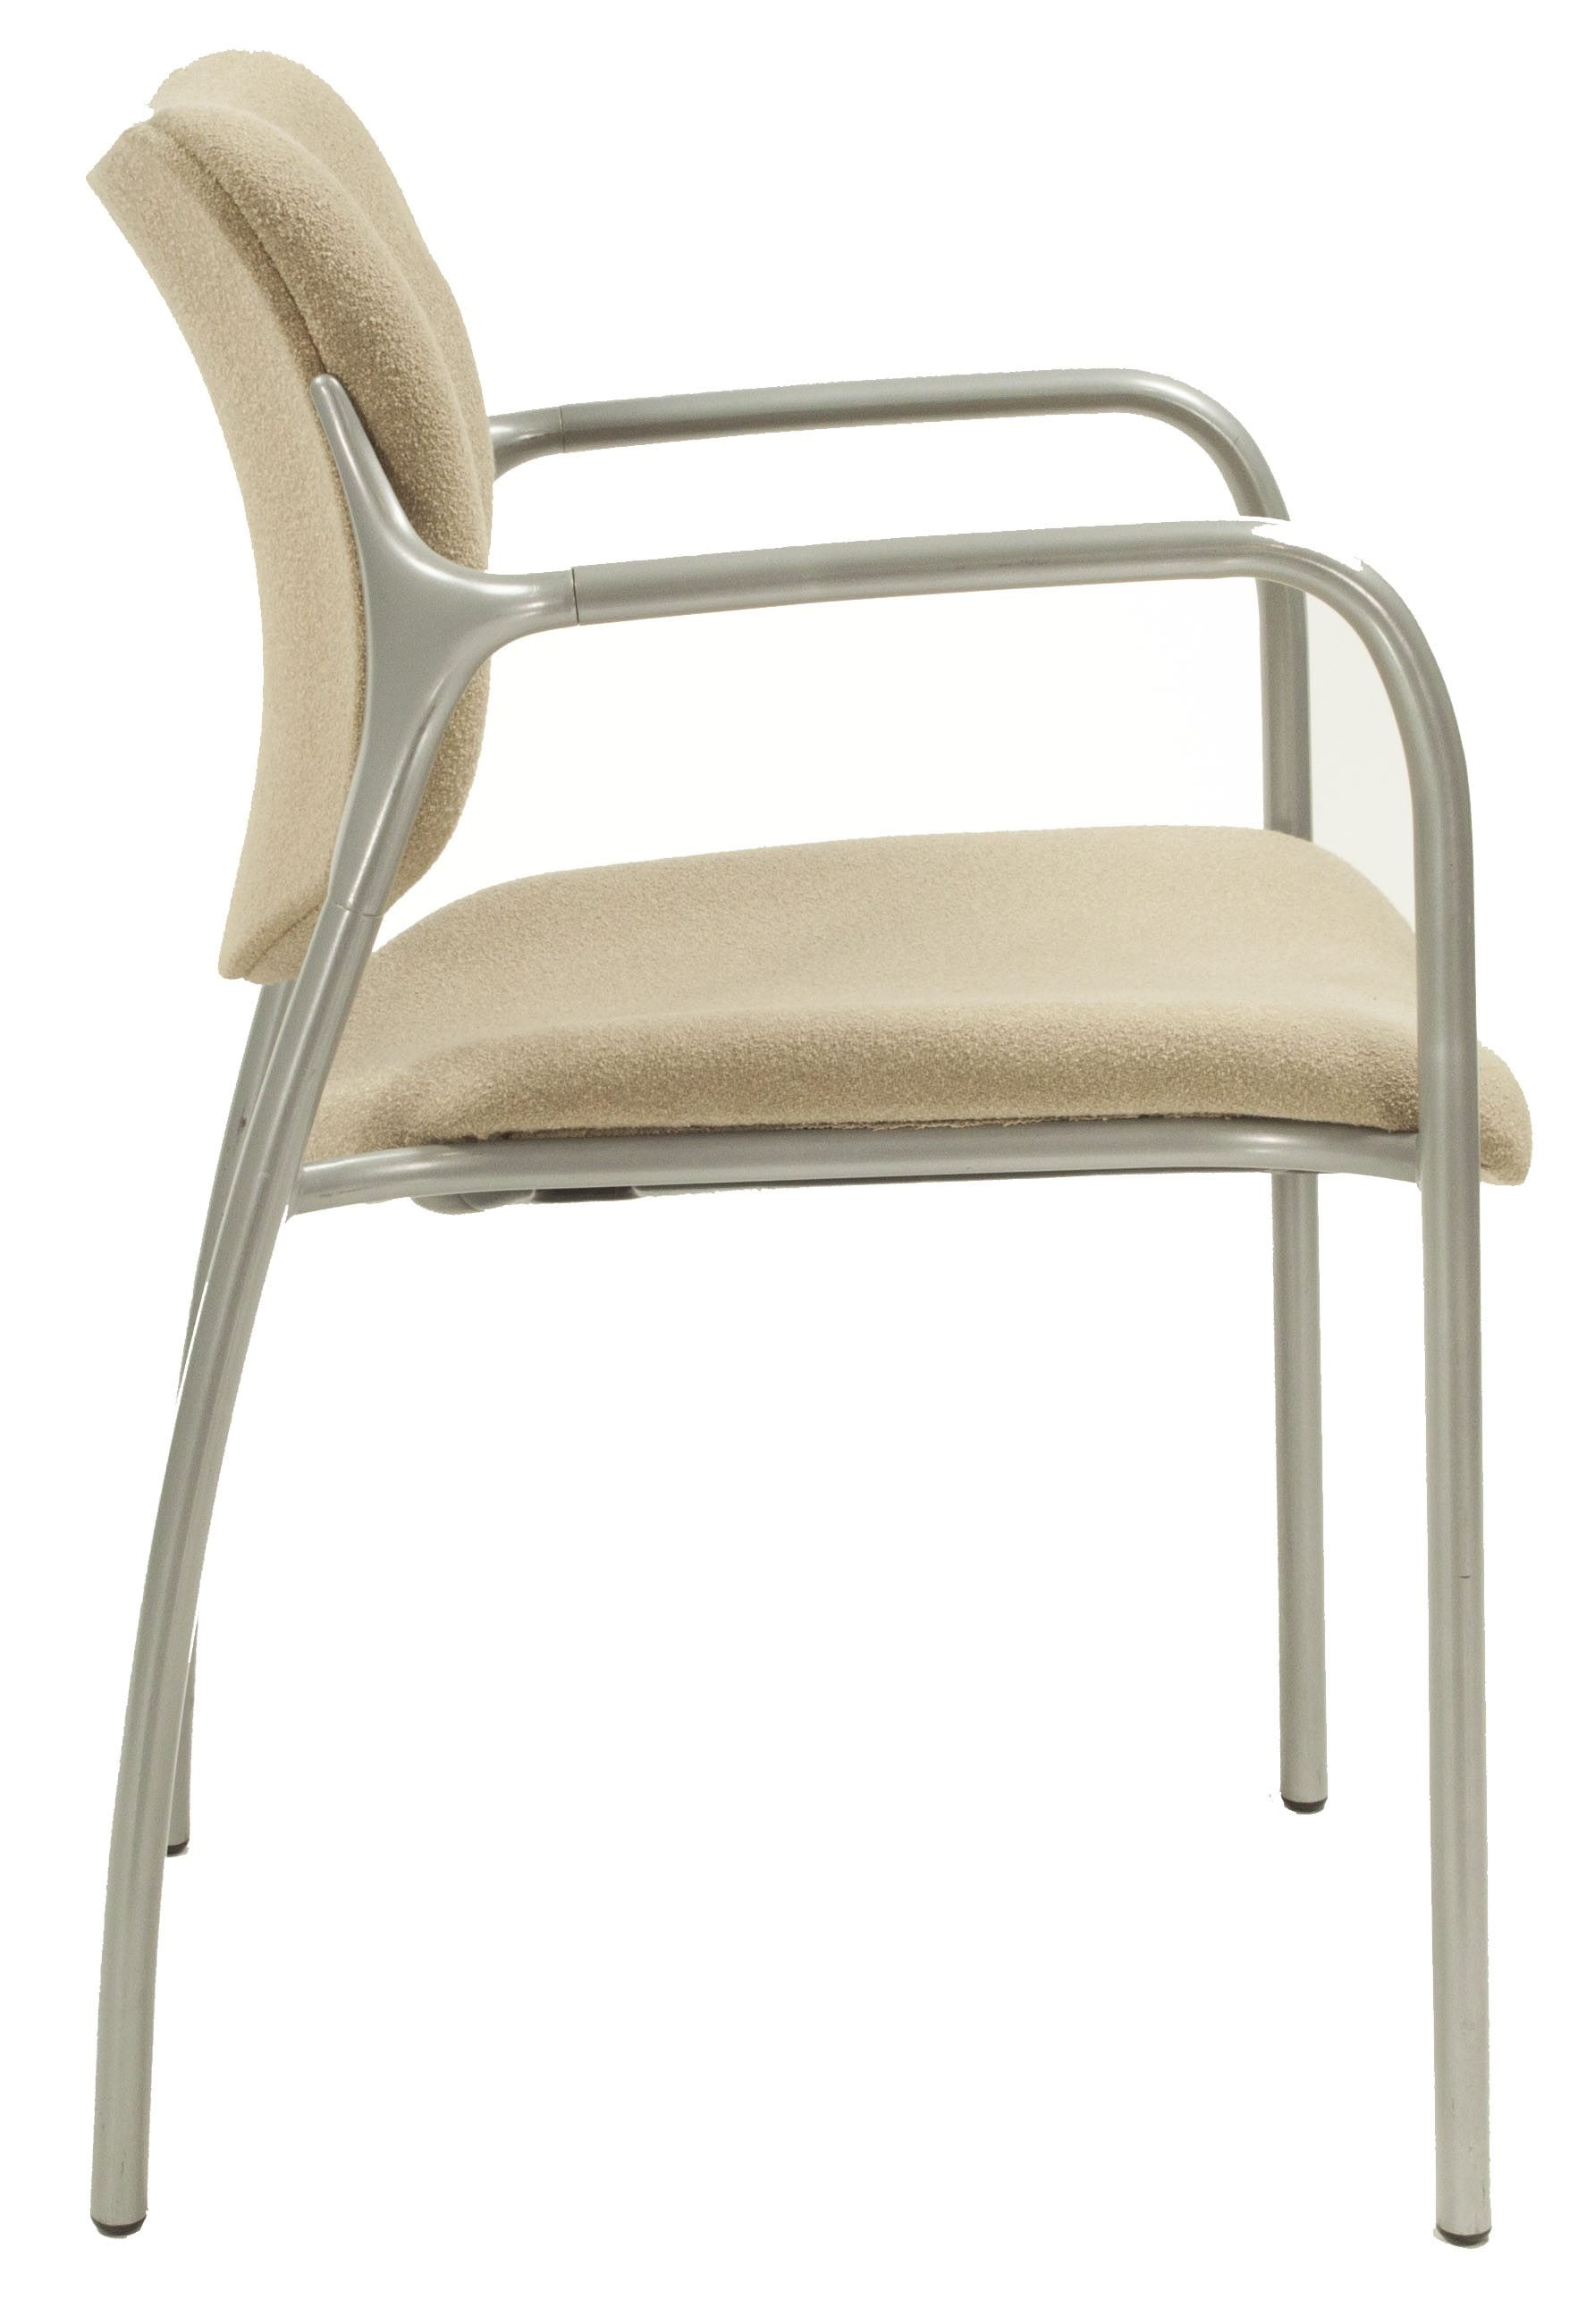 herman miller used office chairs chair - qxi-02 aside side sand national